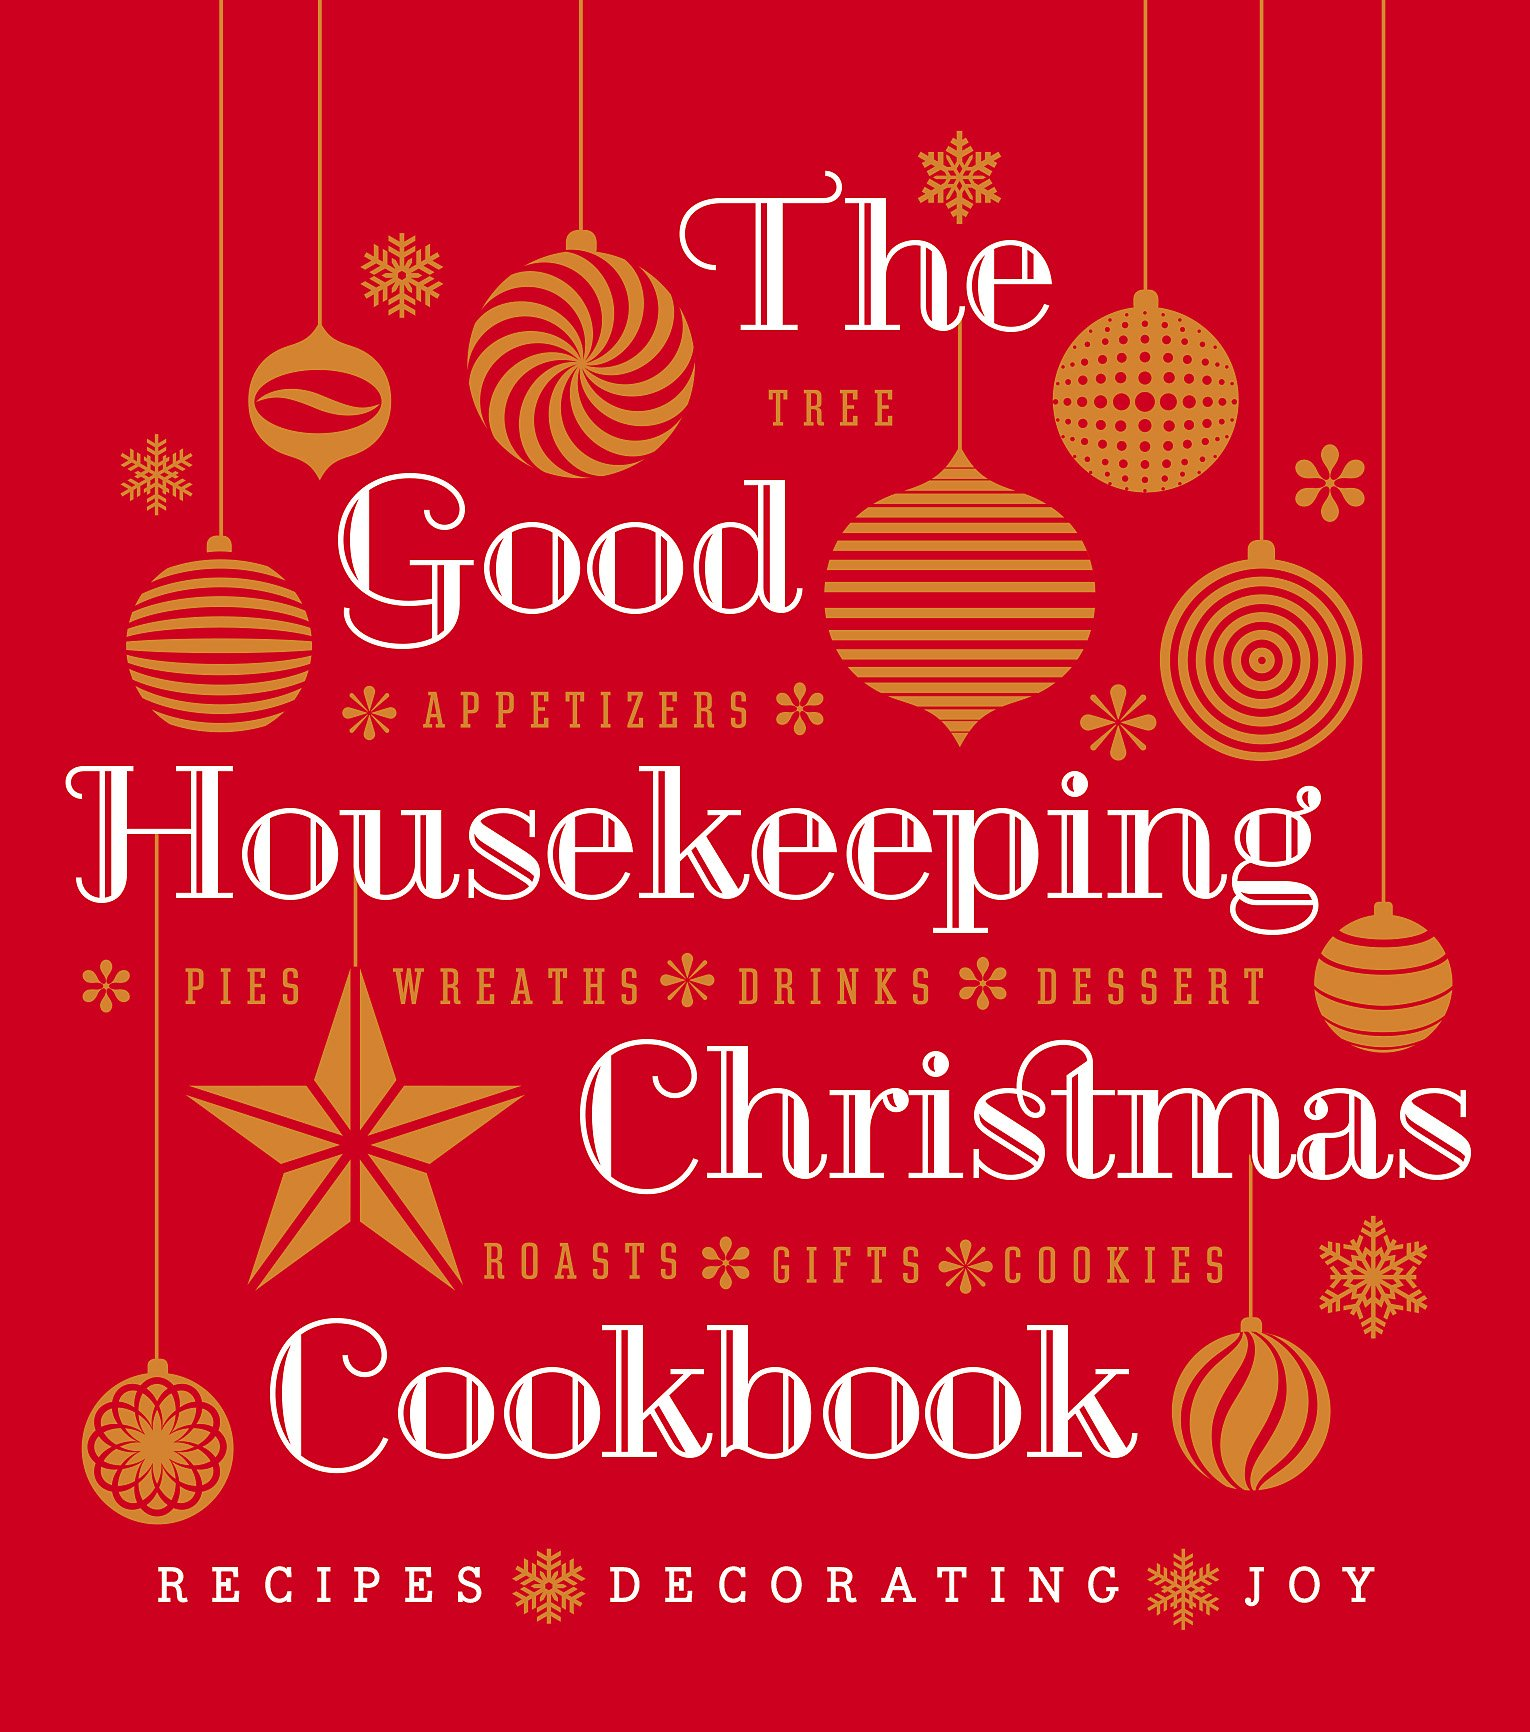 More Books by Good Housekeeping & Susan Westmoreland